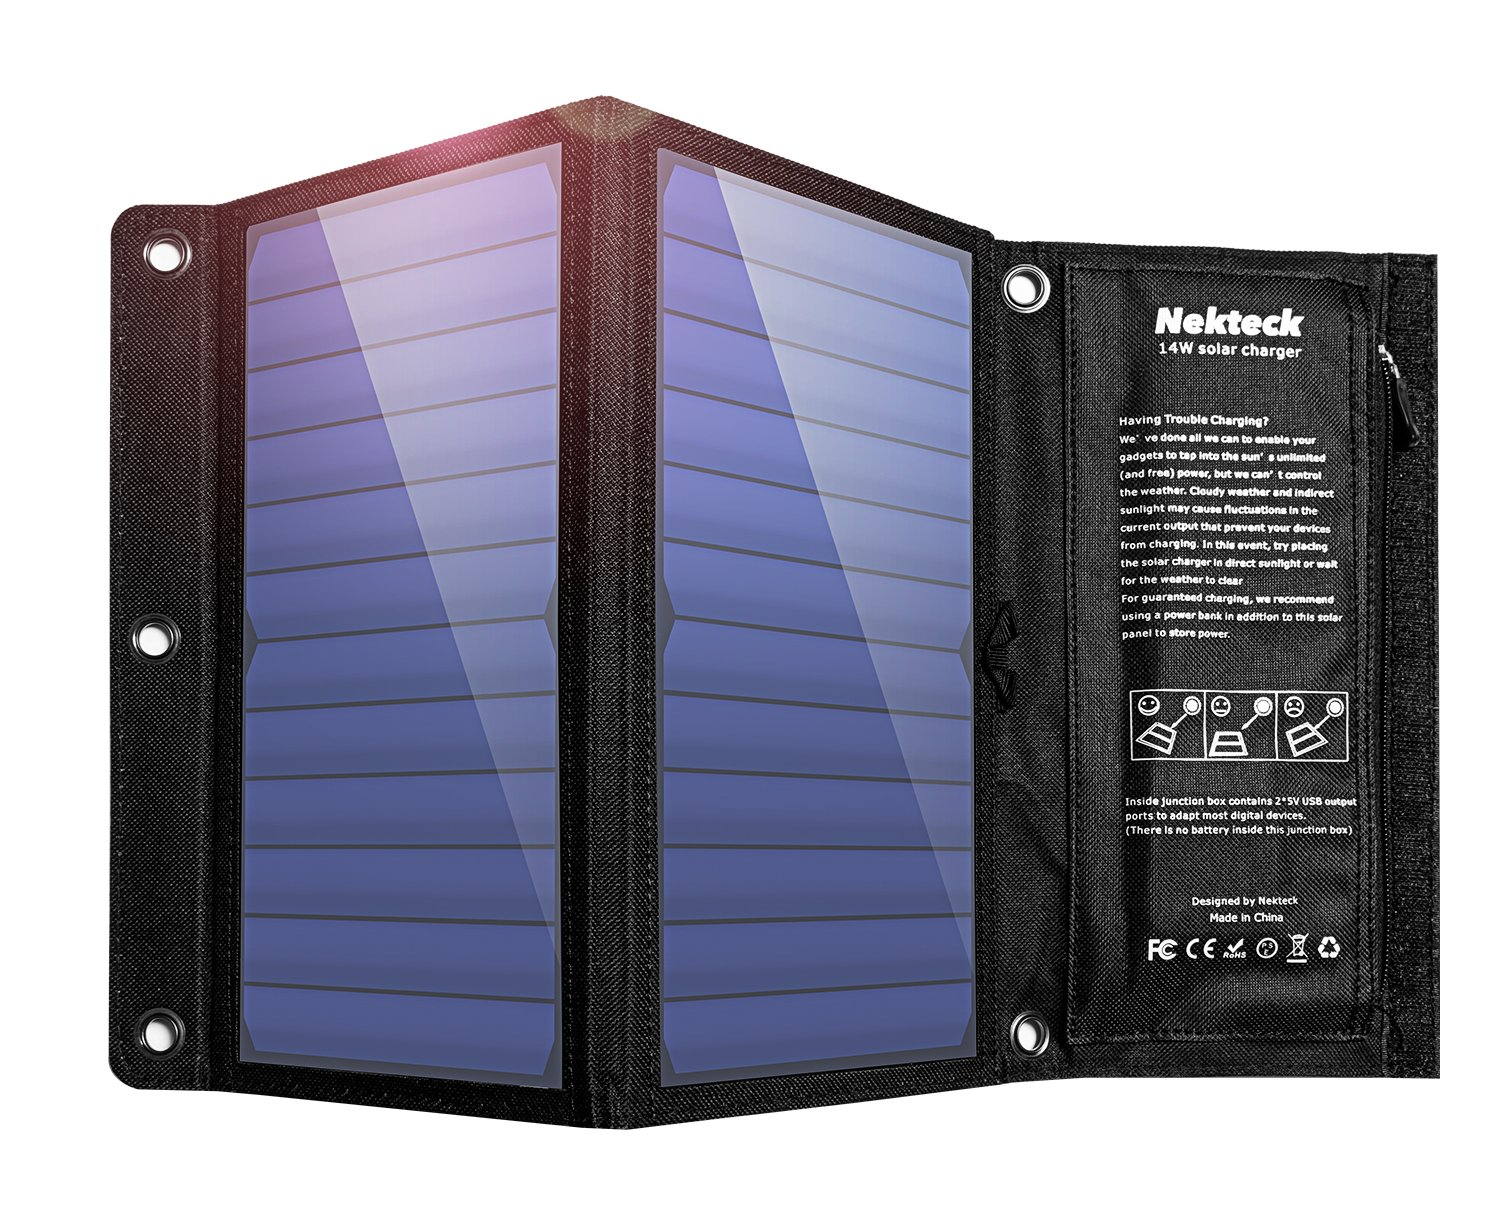 Nekteck 14W Solar Charger with 2-Port USB Charger Build with High efficiency Solar Panel Cell for iPhone 6s / 6 / Plus, SE, iPad, Galaxy S6/S7/ Edge/ Plus, Nexus 5X/6P, any USB devices, and more by Nekteck (Image #1)